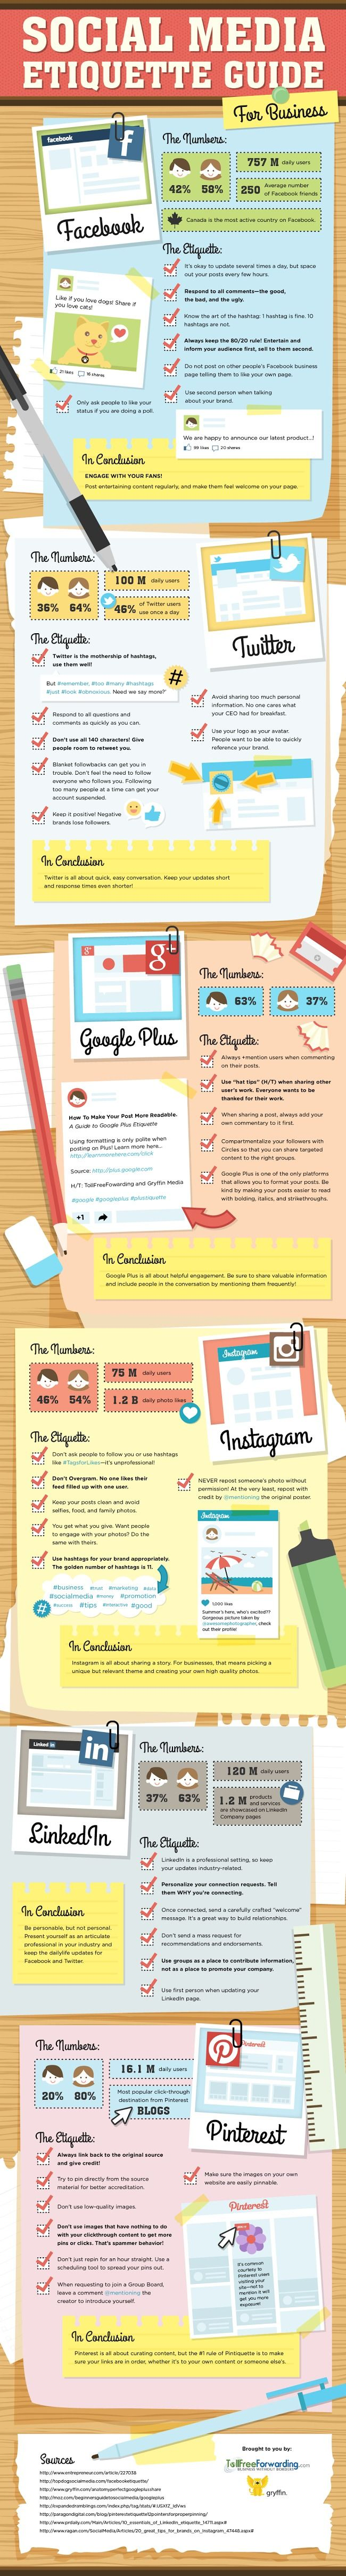 GooglePlus, Twitter, Instagram, Facebook, Pinterest - Social Media Etiquette Guide For Business - #infographic